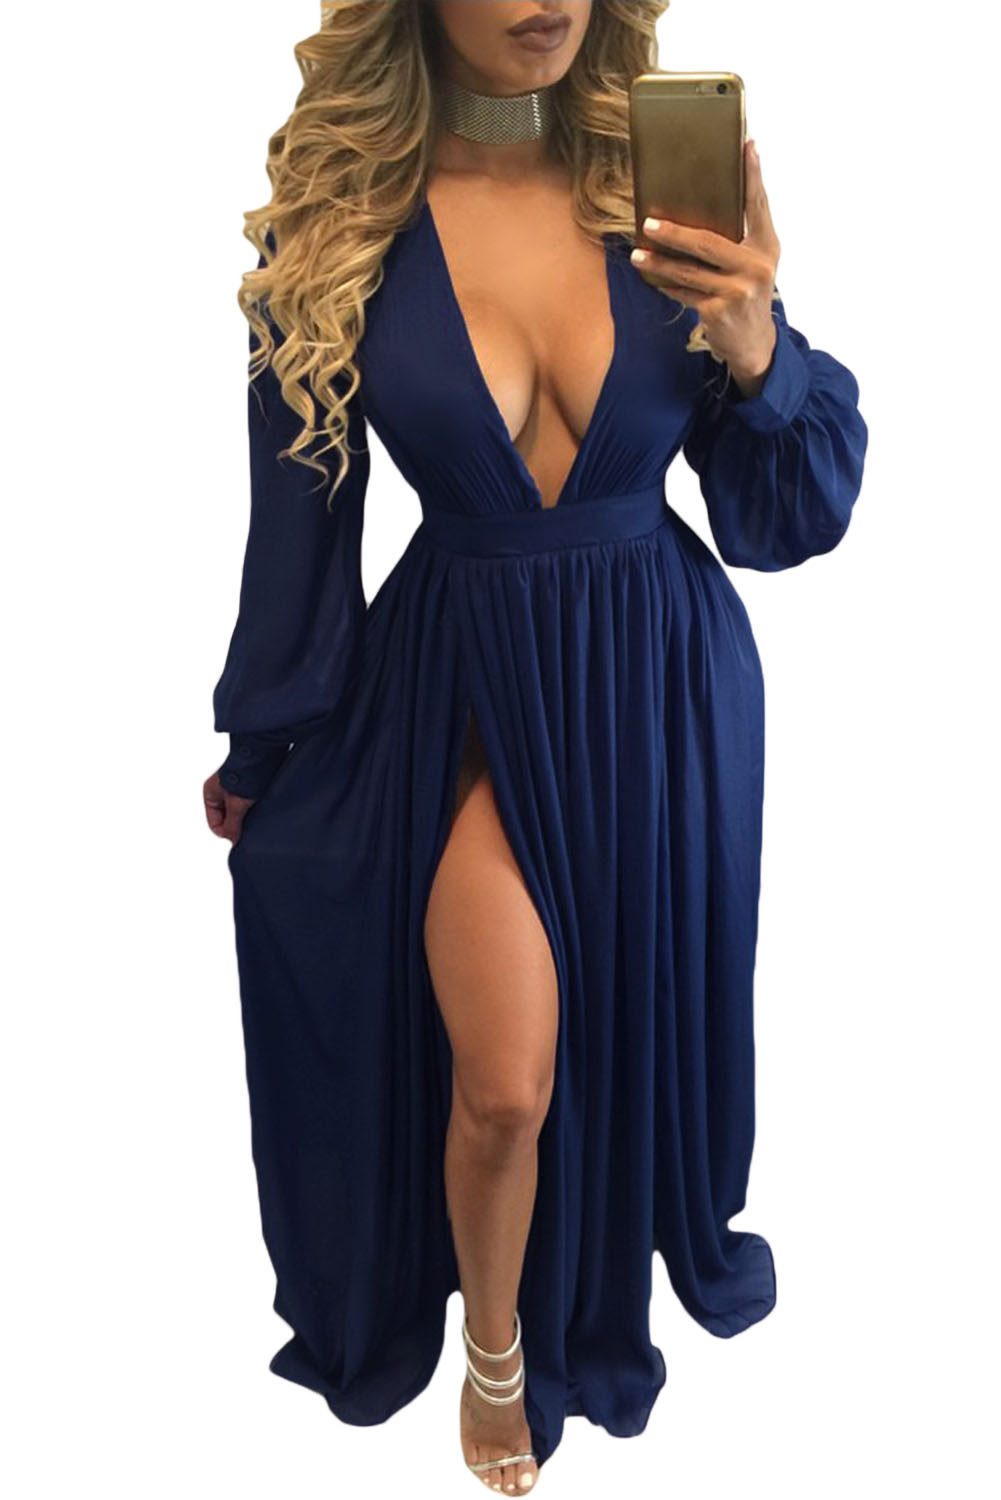 Blue Goddess Dress & Always In Style 2017-2018